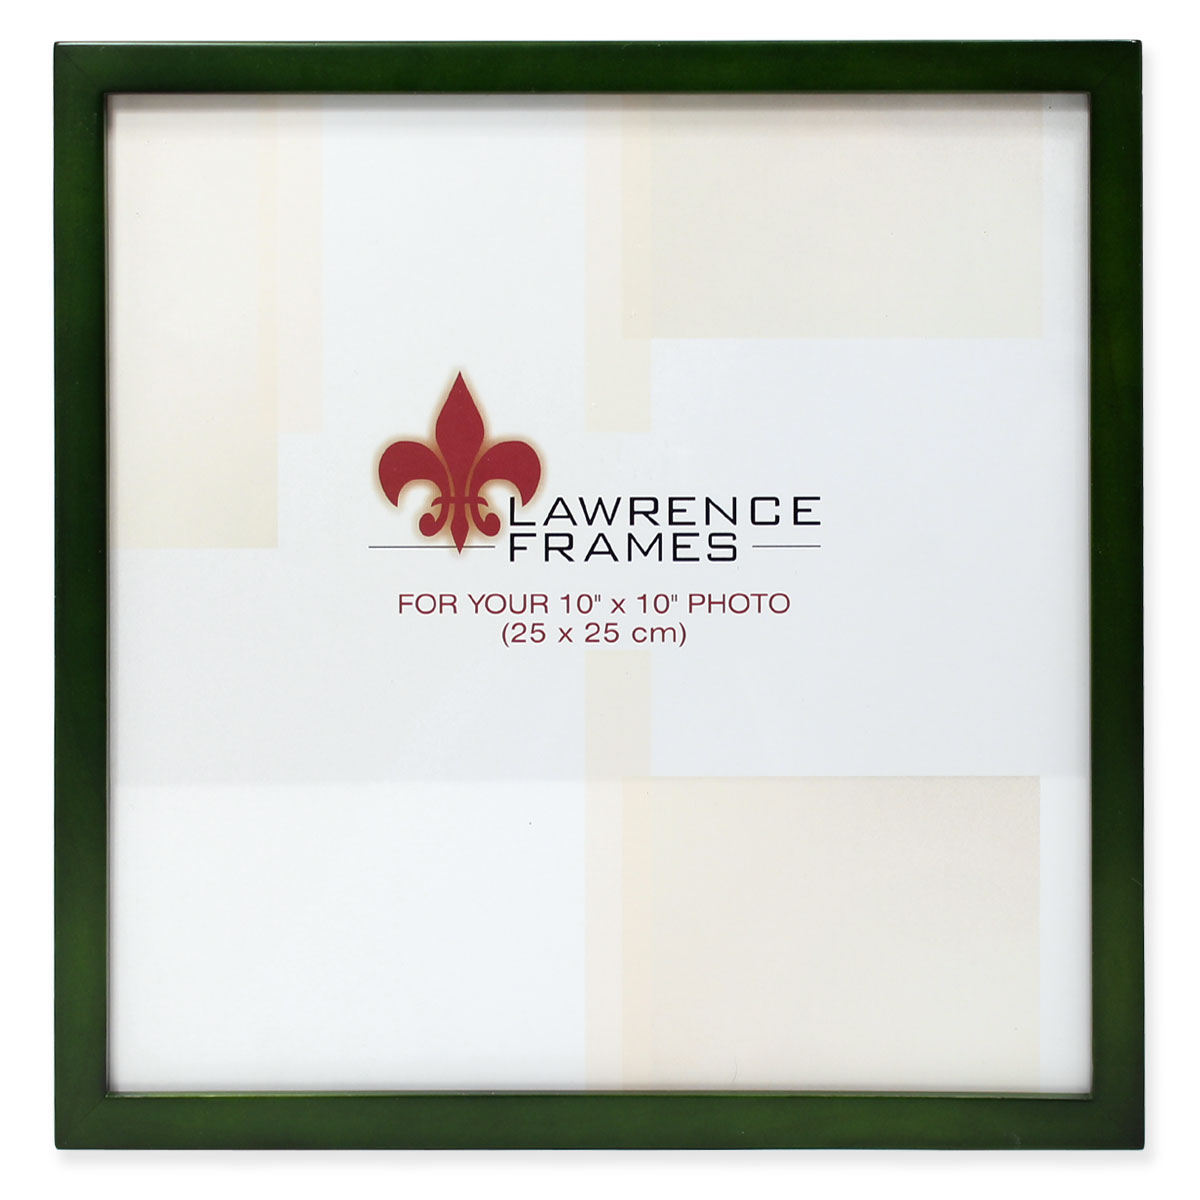 10x10 Green Wood Picture Frame Gallery Collection by Lawrence Frames